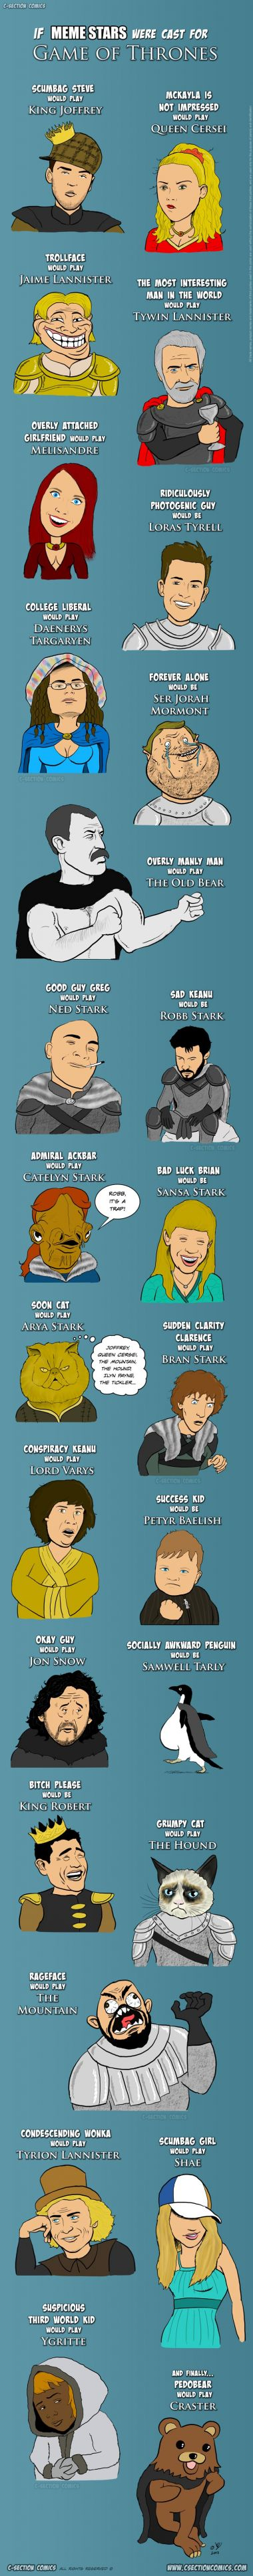 If Meme Stars Were Cast For Game of Thrones - By C-Section Comics